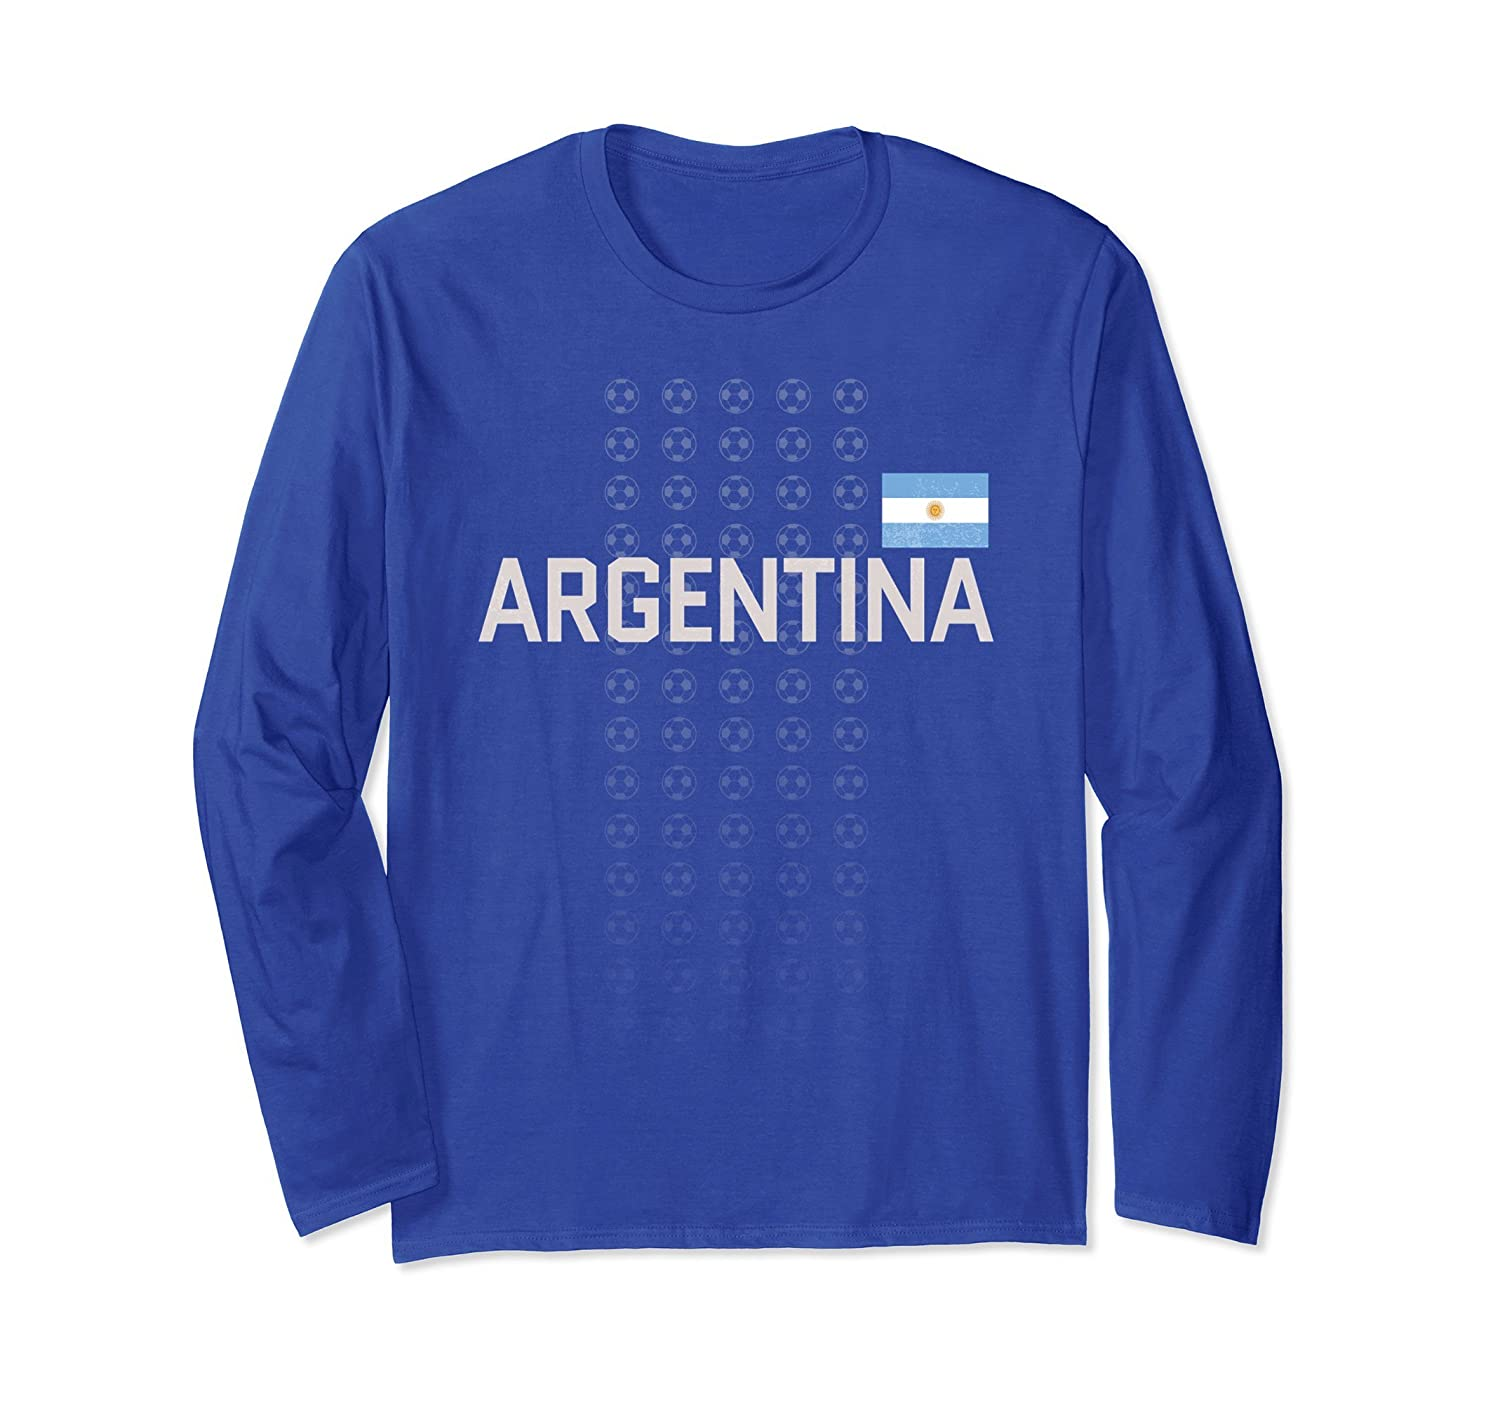 Argentina Soccer Retro Top Fan Clothing Adult Teens-ah my shirt one gift